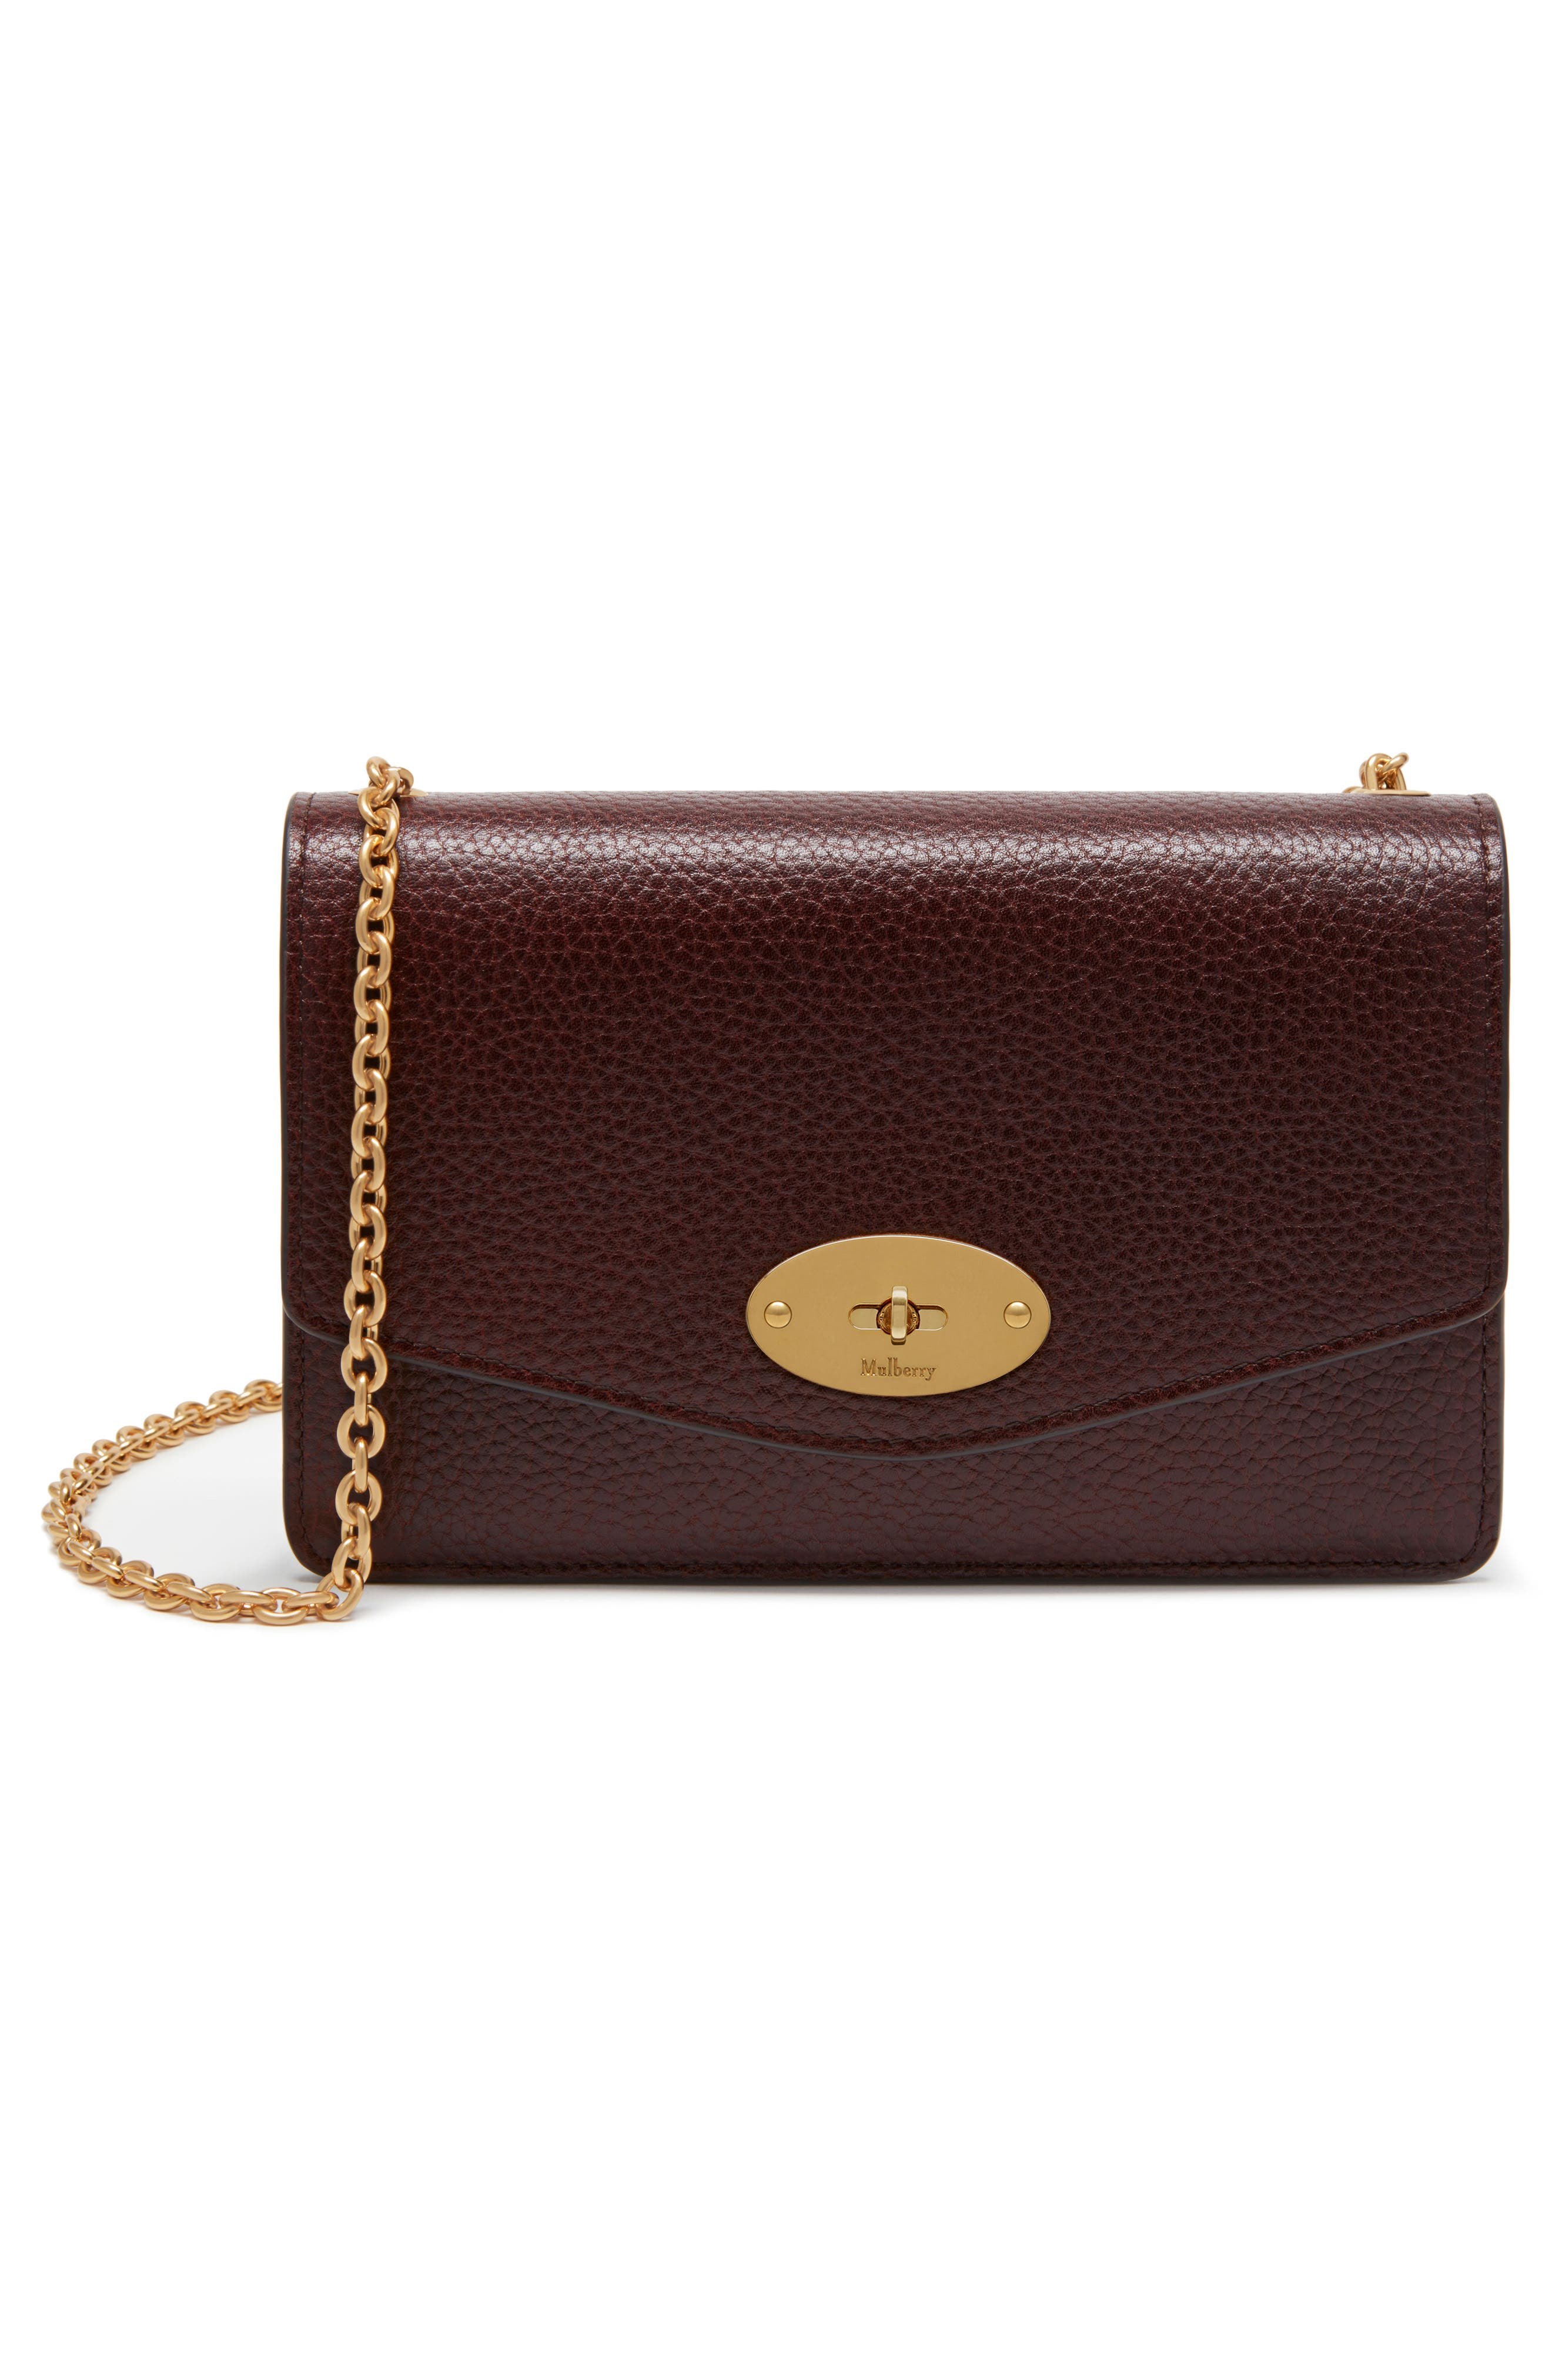 Main Image - Mulberry Small Darley Leather Clutch